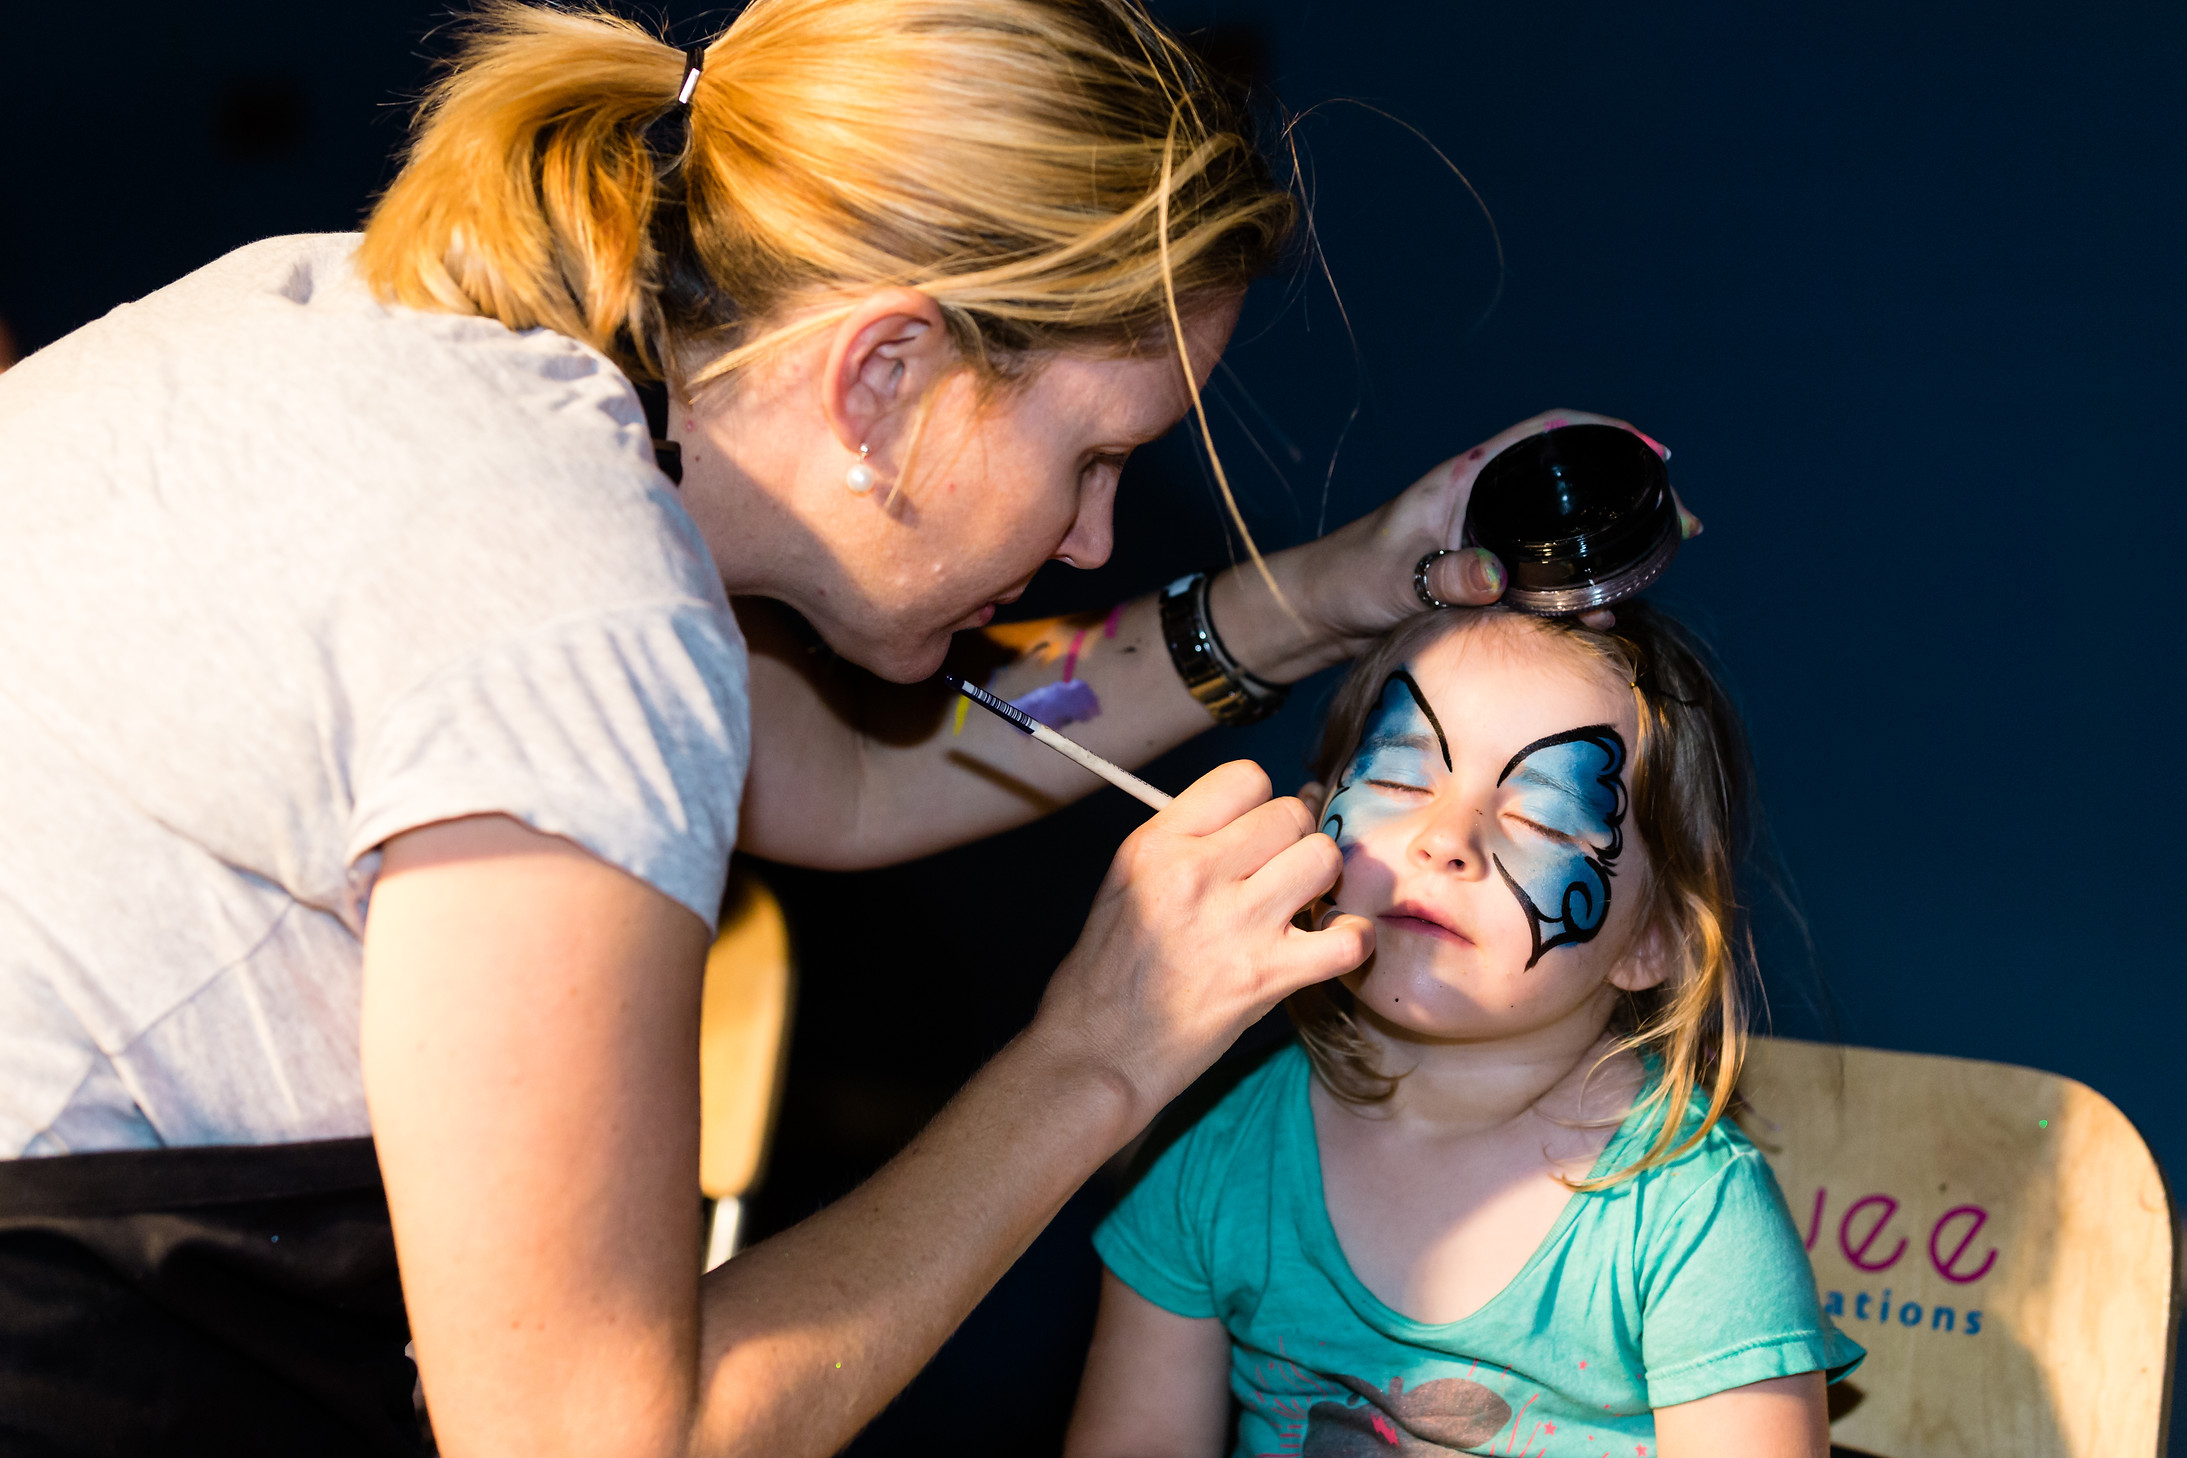 young girl getting face painted